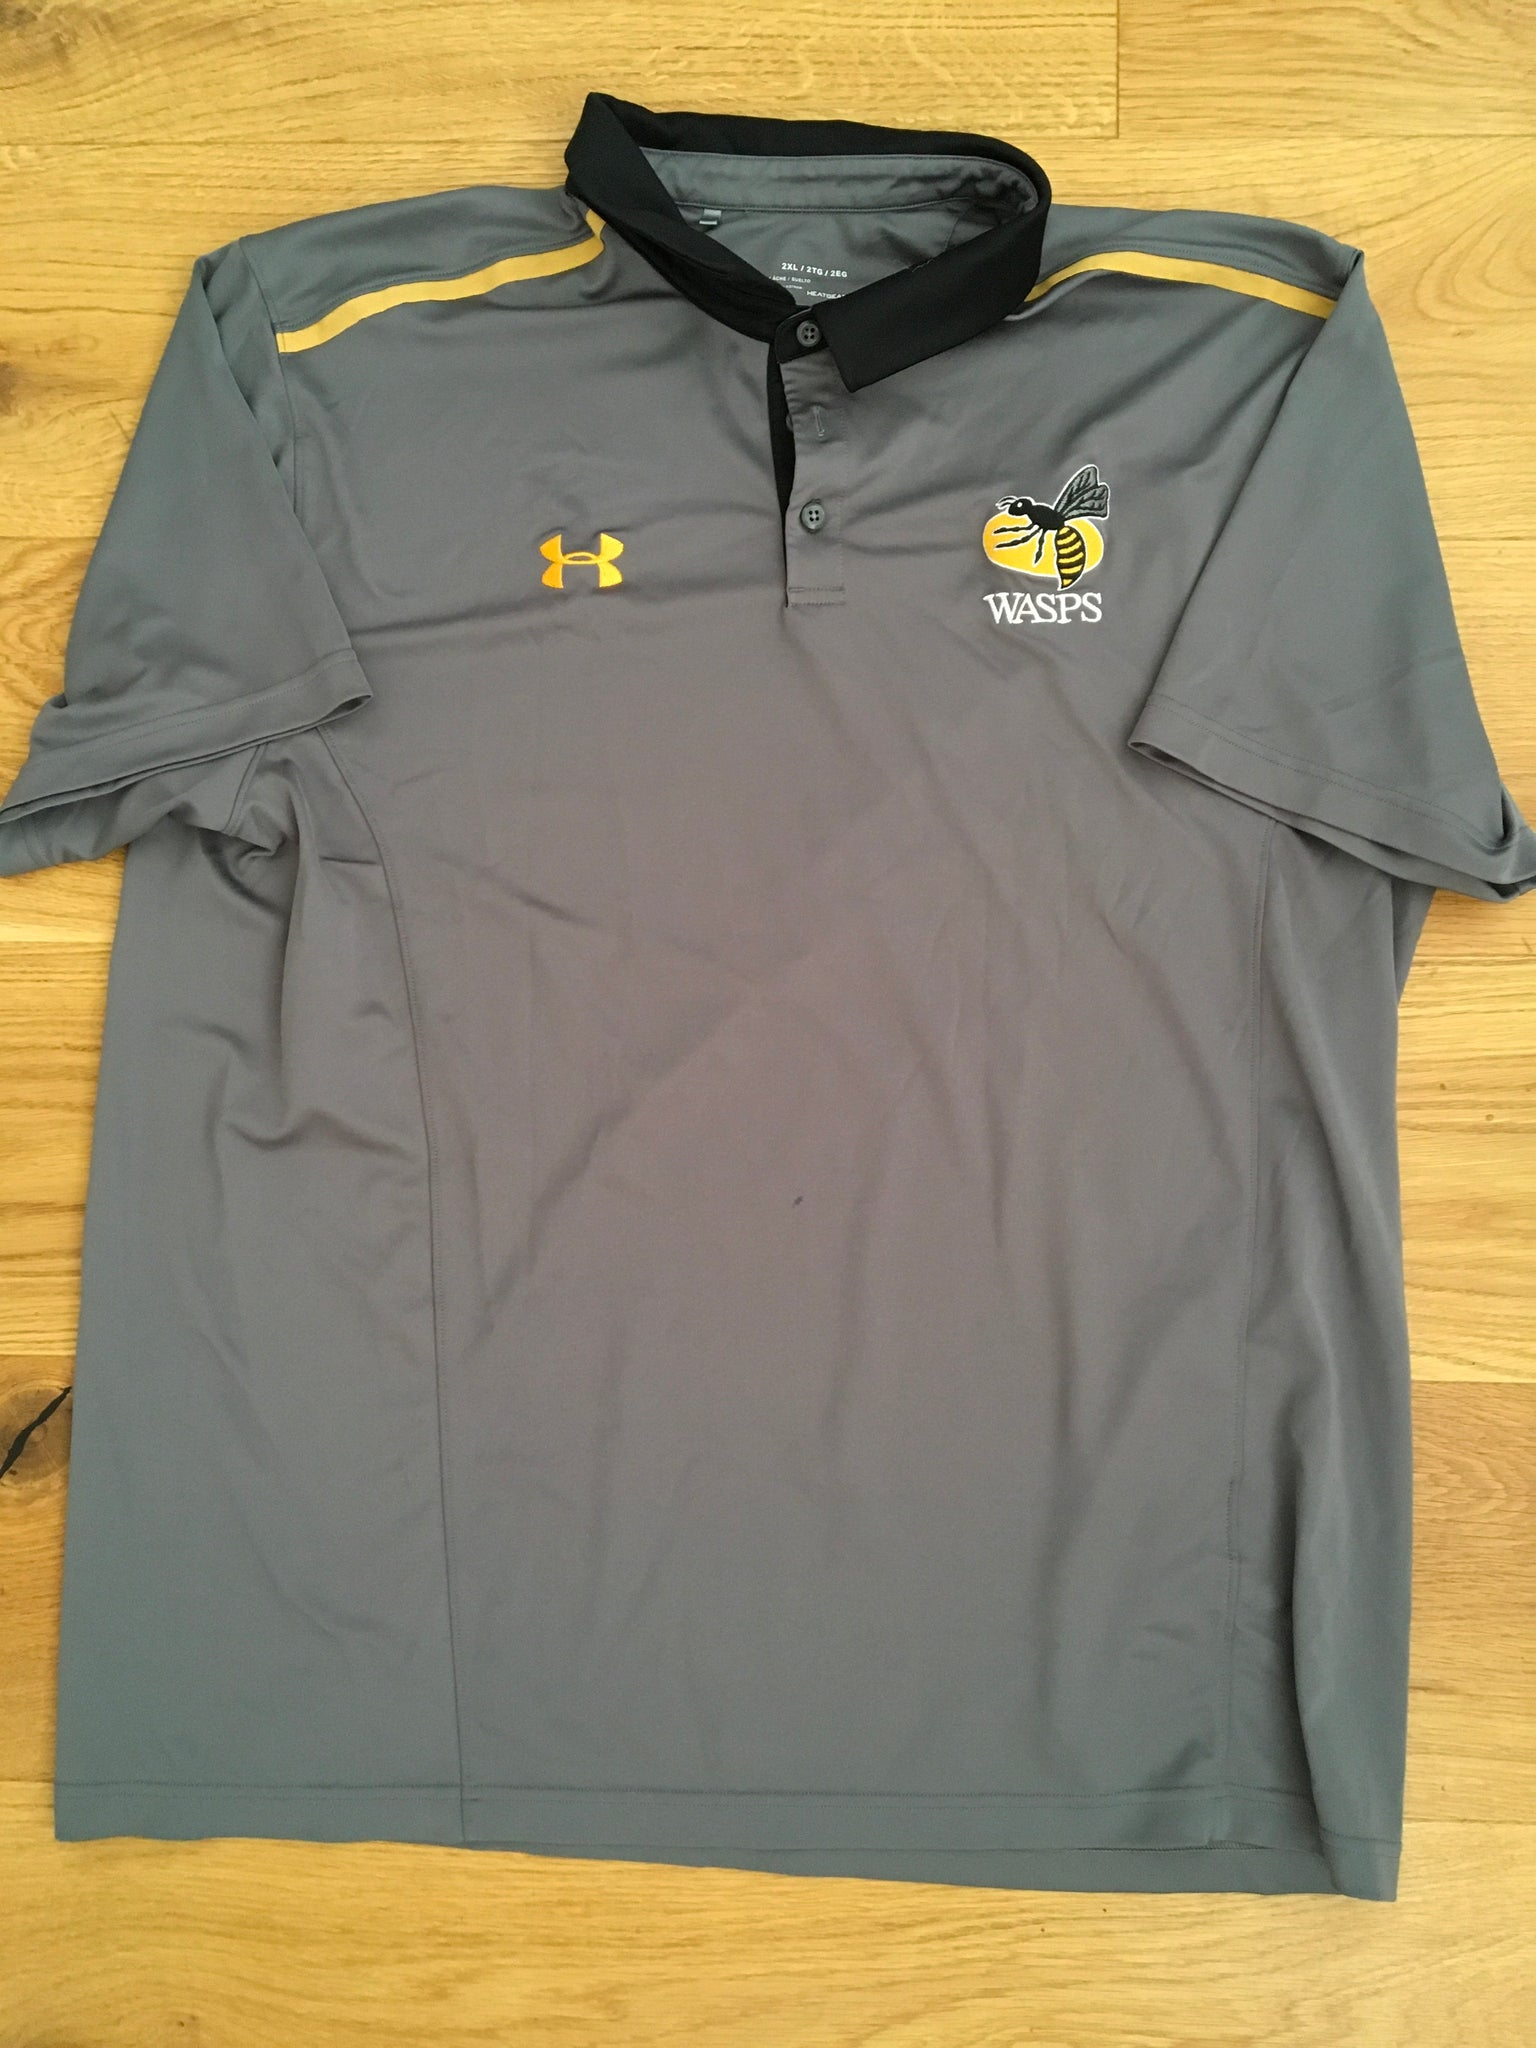 Marcus Watson - Wasps Polo Shirt [Grey, Black & Gold]